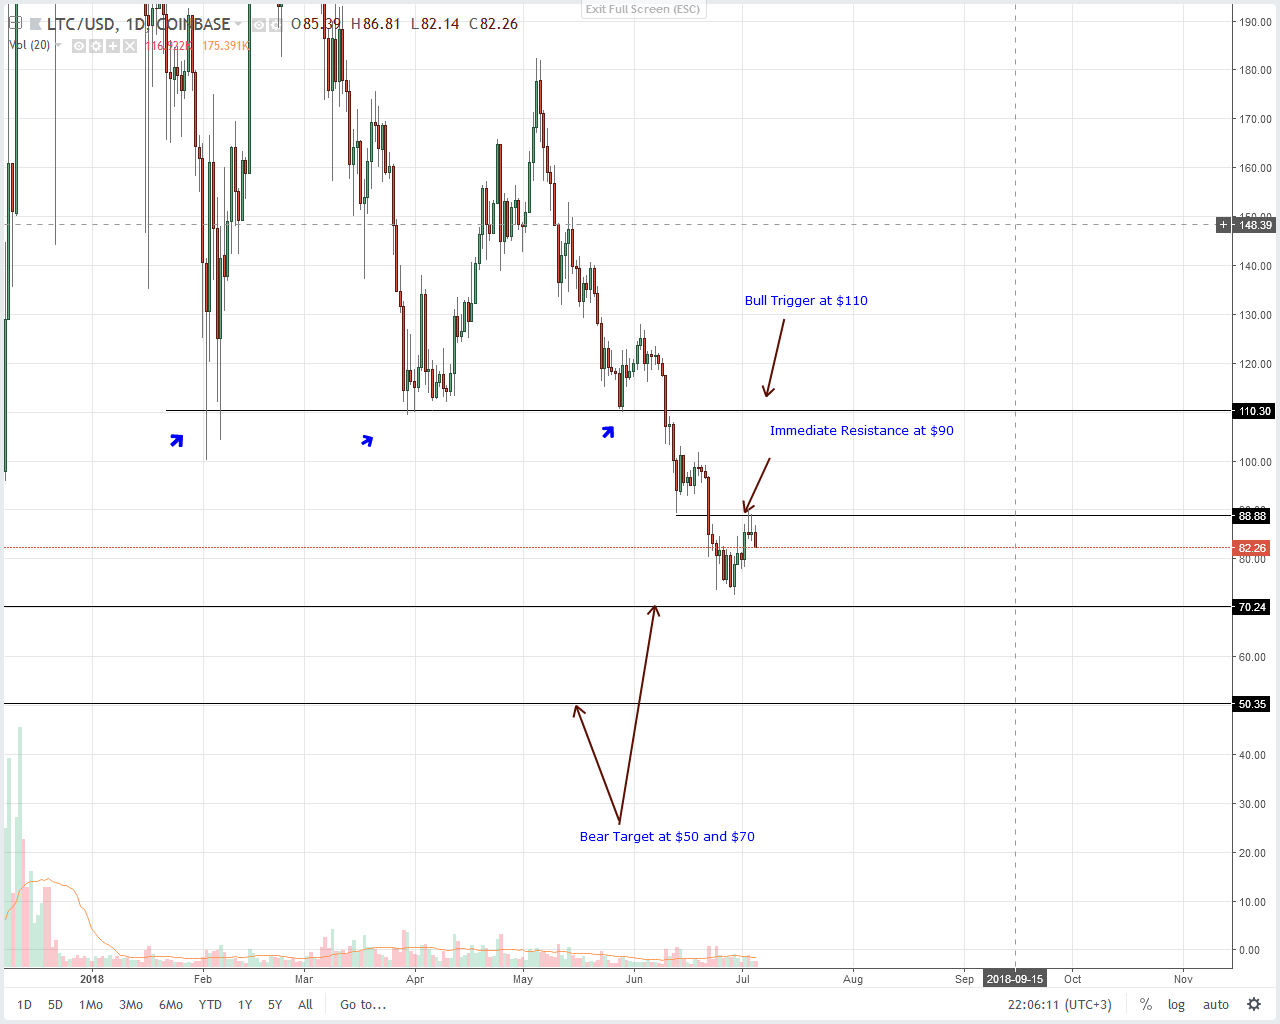 2 - Litecoin Bulls Stand On Shaky Ground – Prices May Continue Reversing The July 2 Gains